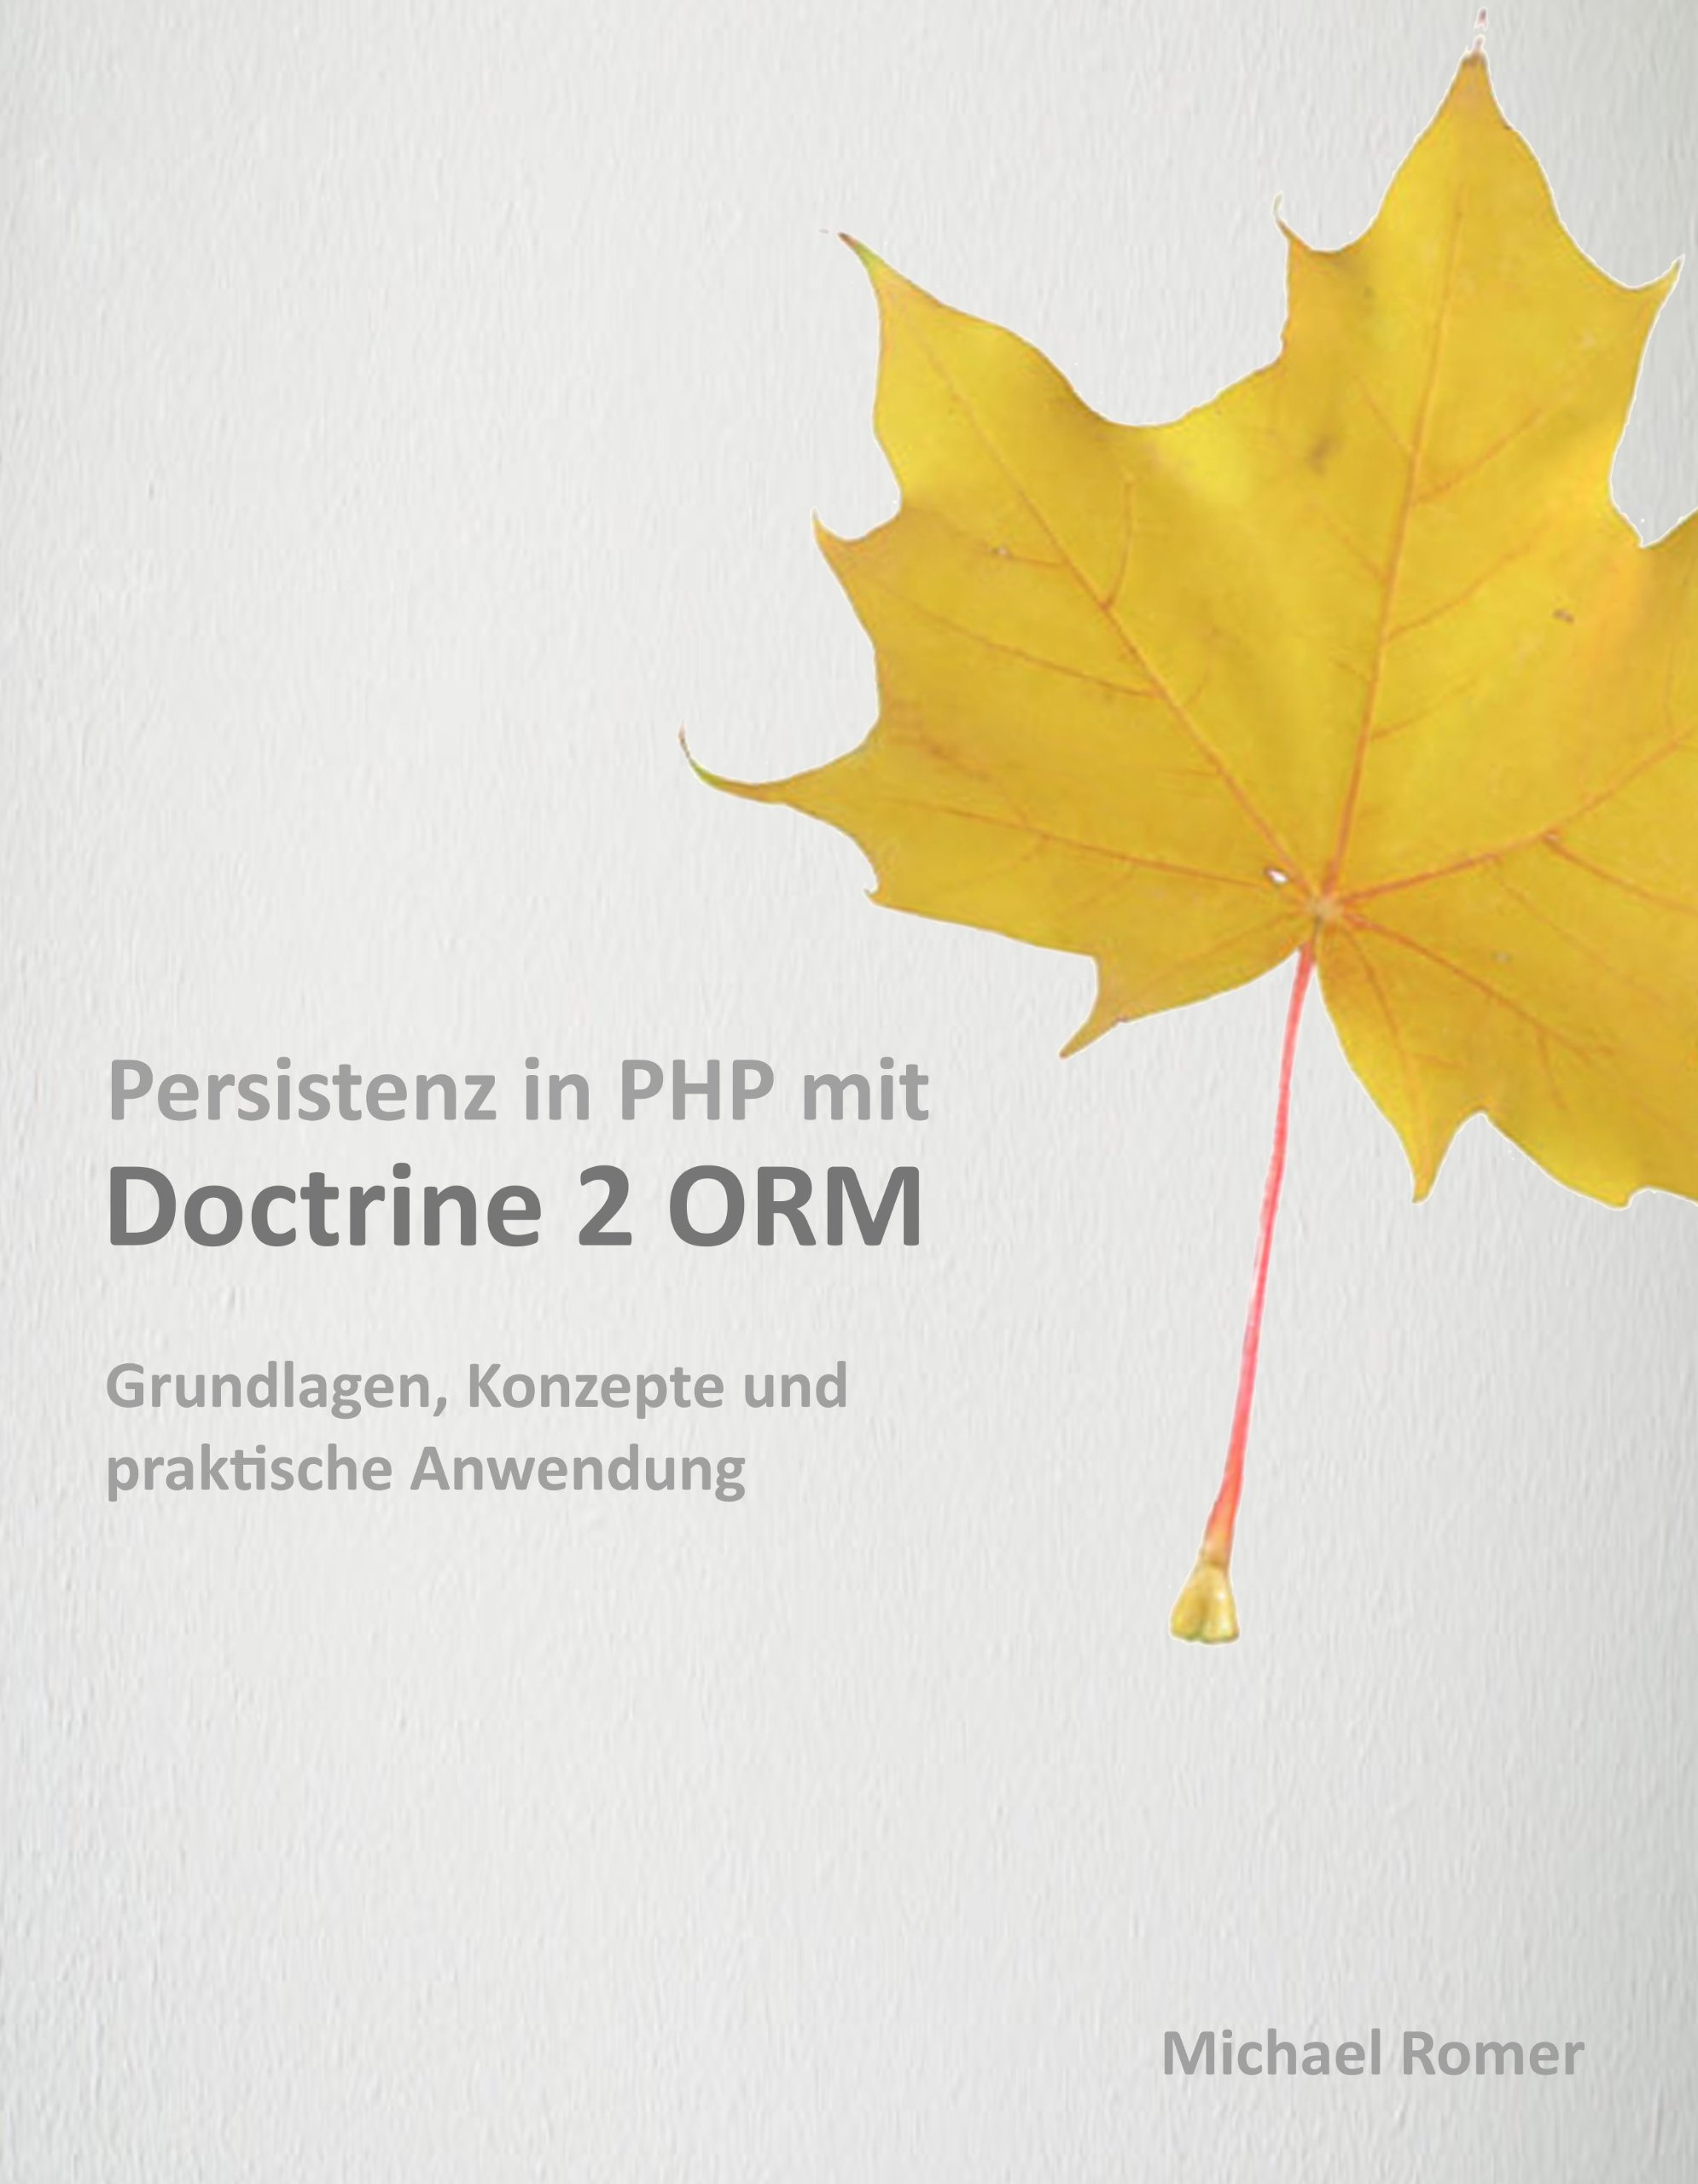 Persistenz in PHP mit Doctrine 2 ORM (Early Access Edition) (German Edition)